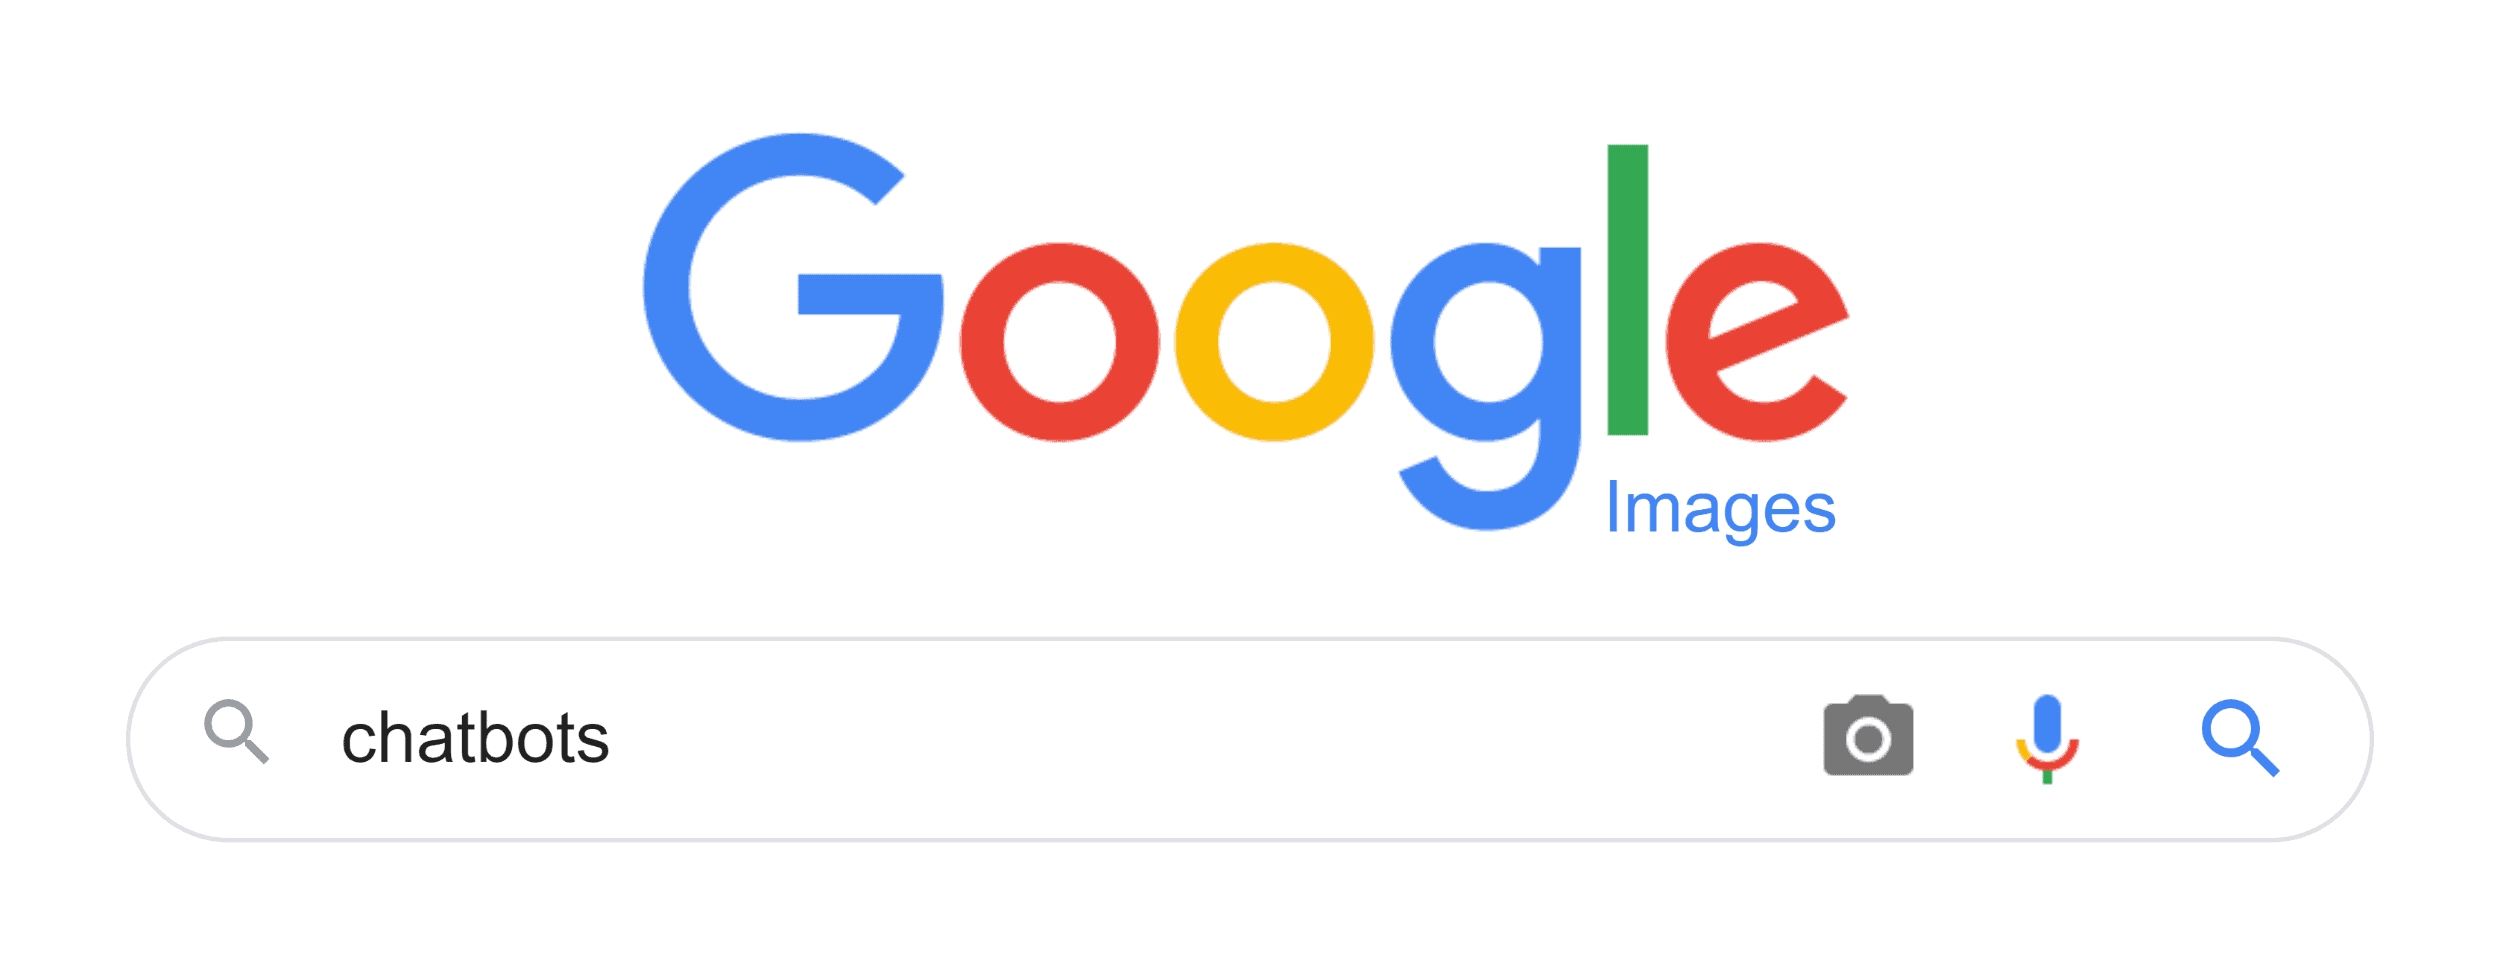 Google images – Search – Chatbots